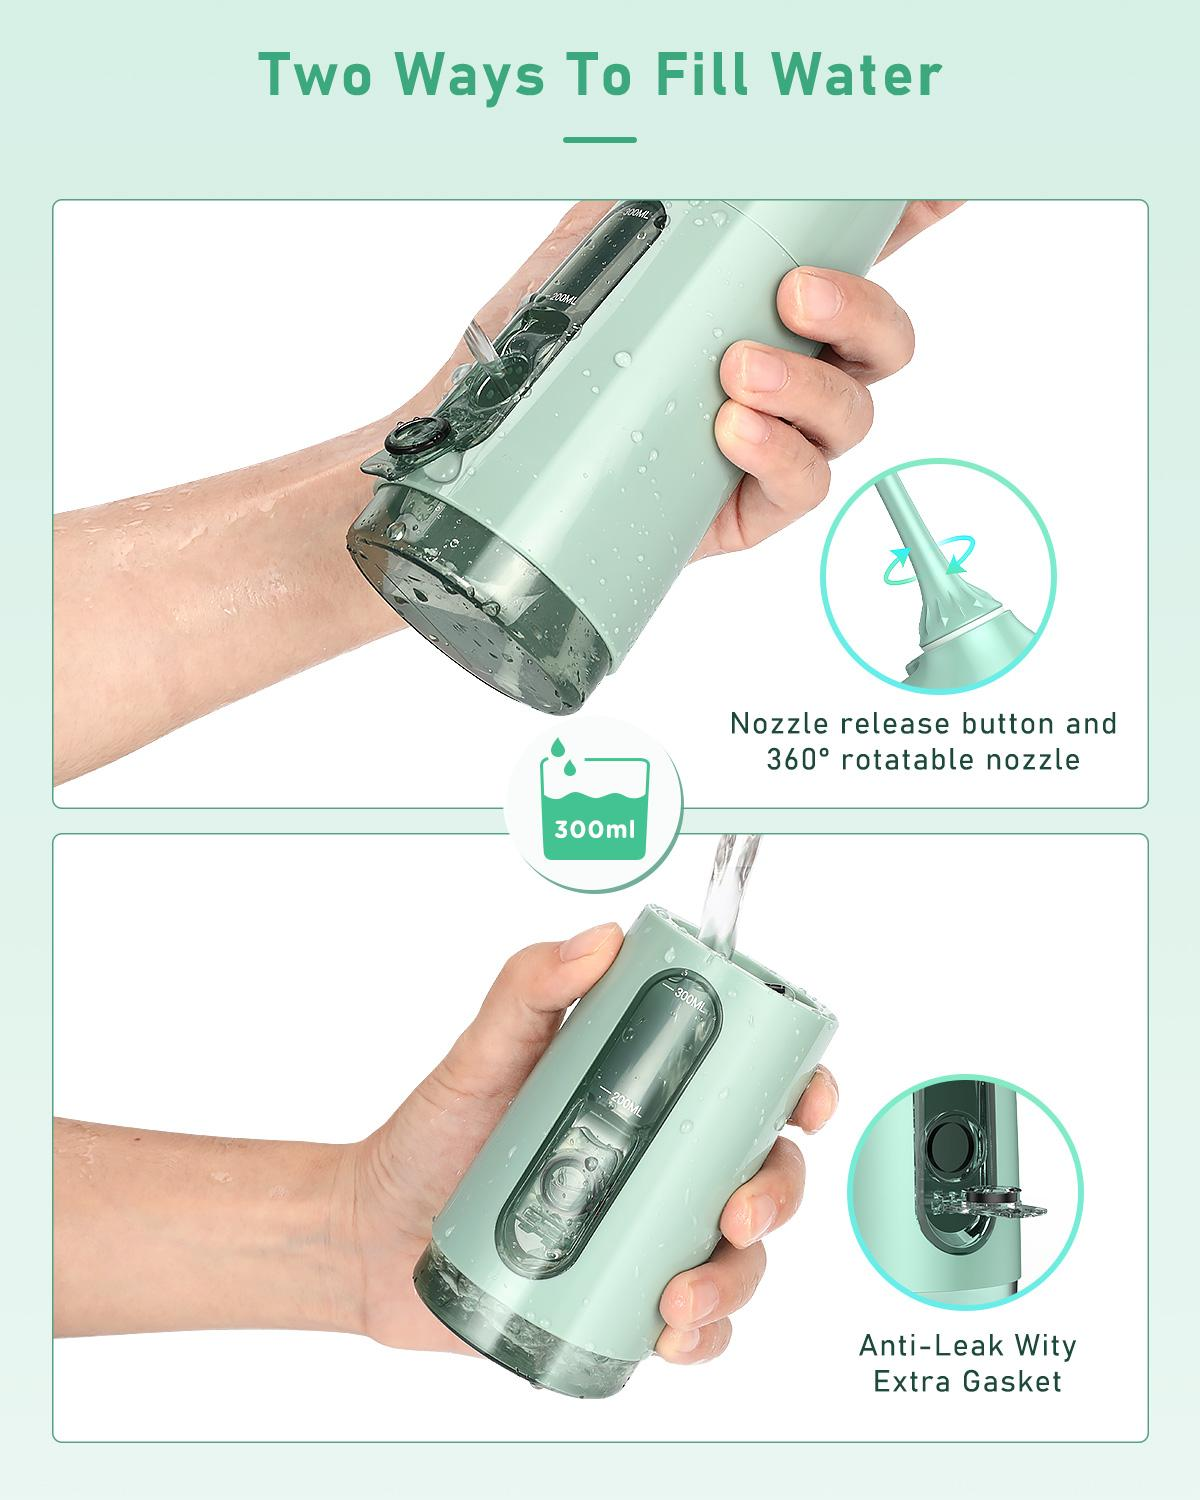 Liberex Portable Water Flosser USB Rechargeable Oral Irrigators 4 Modes 5 Jet Tips OLED IPX7 waterproof Tooth Irrigator 300ml enlarge